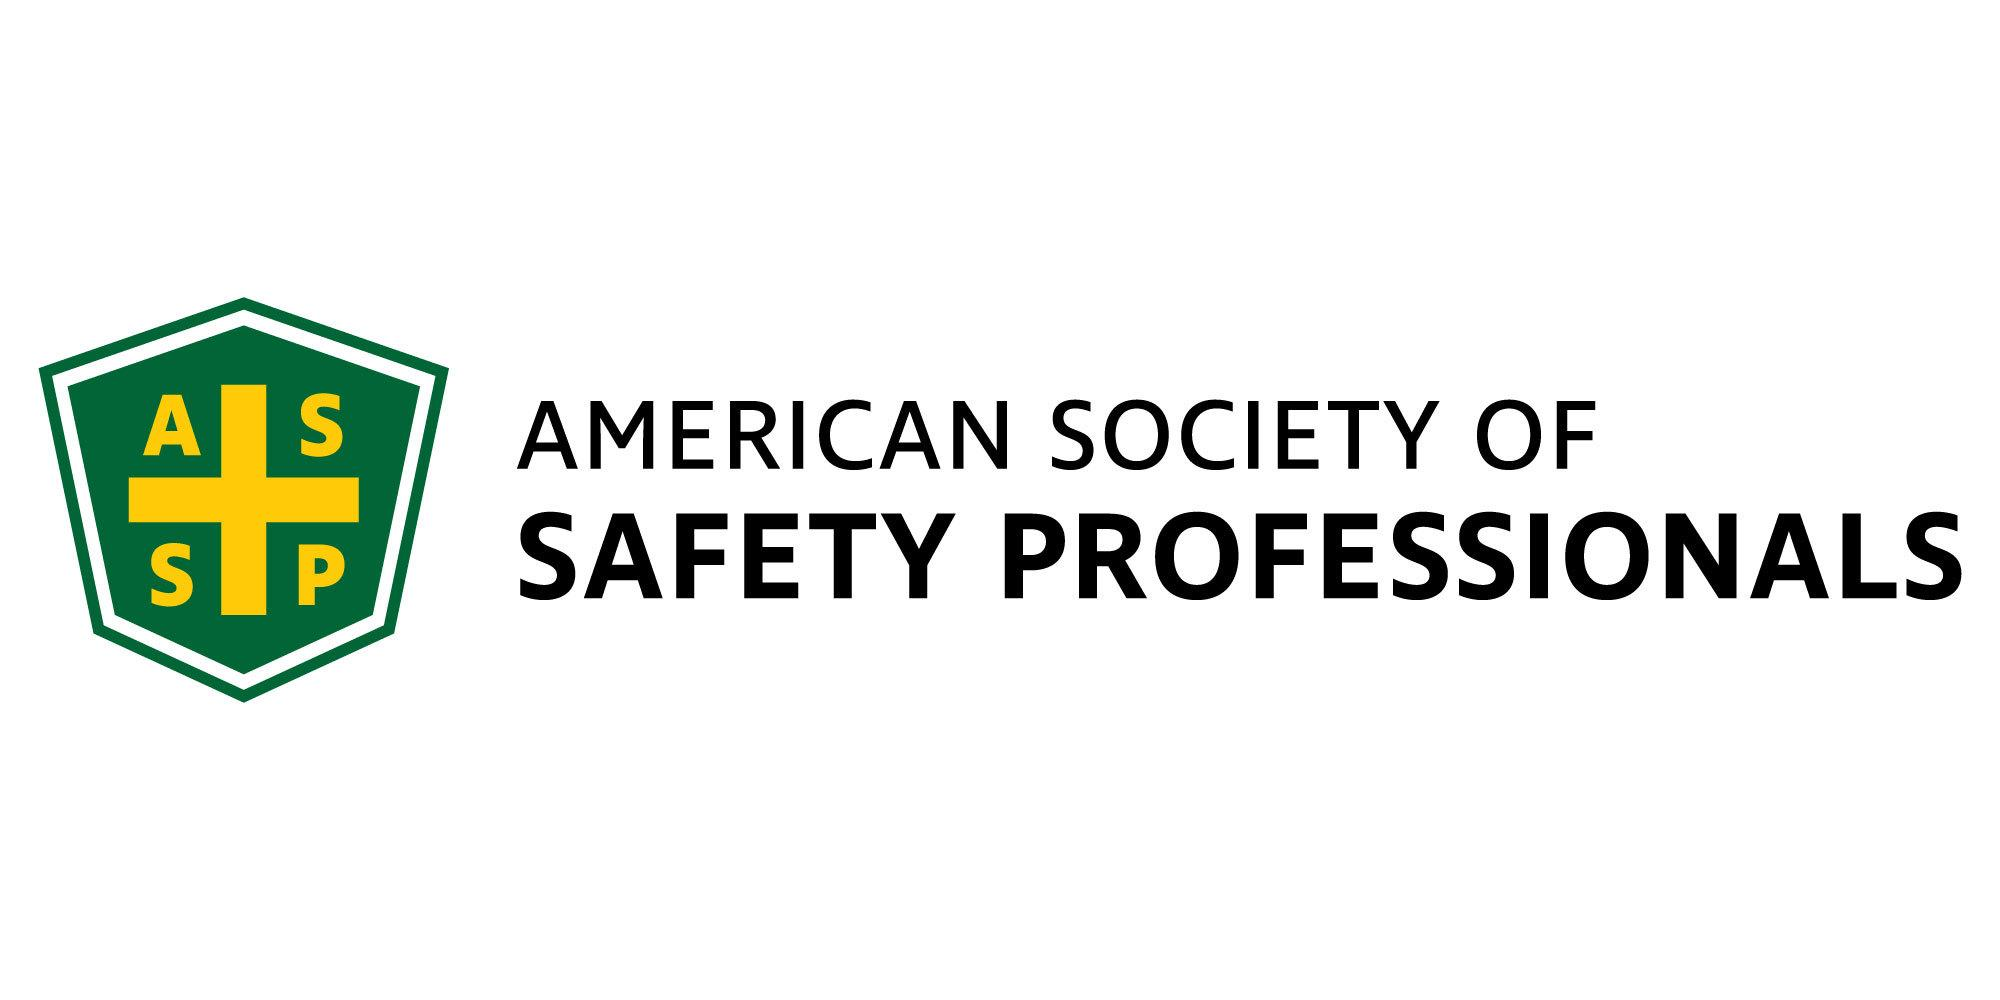 ASSP American Society of Safety Professionals logo